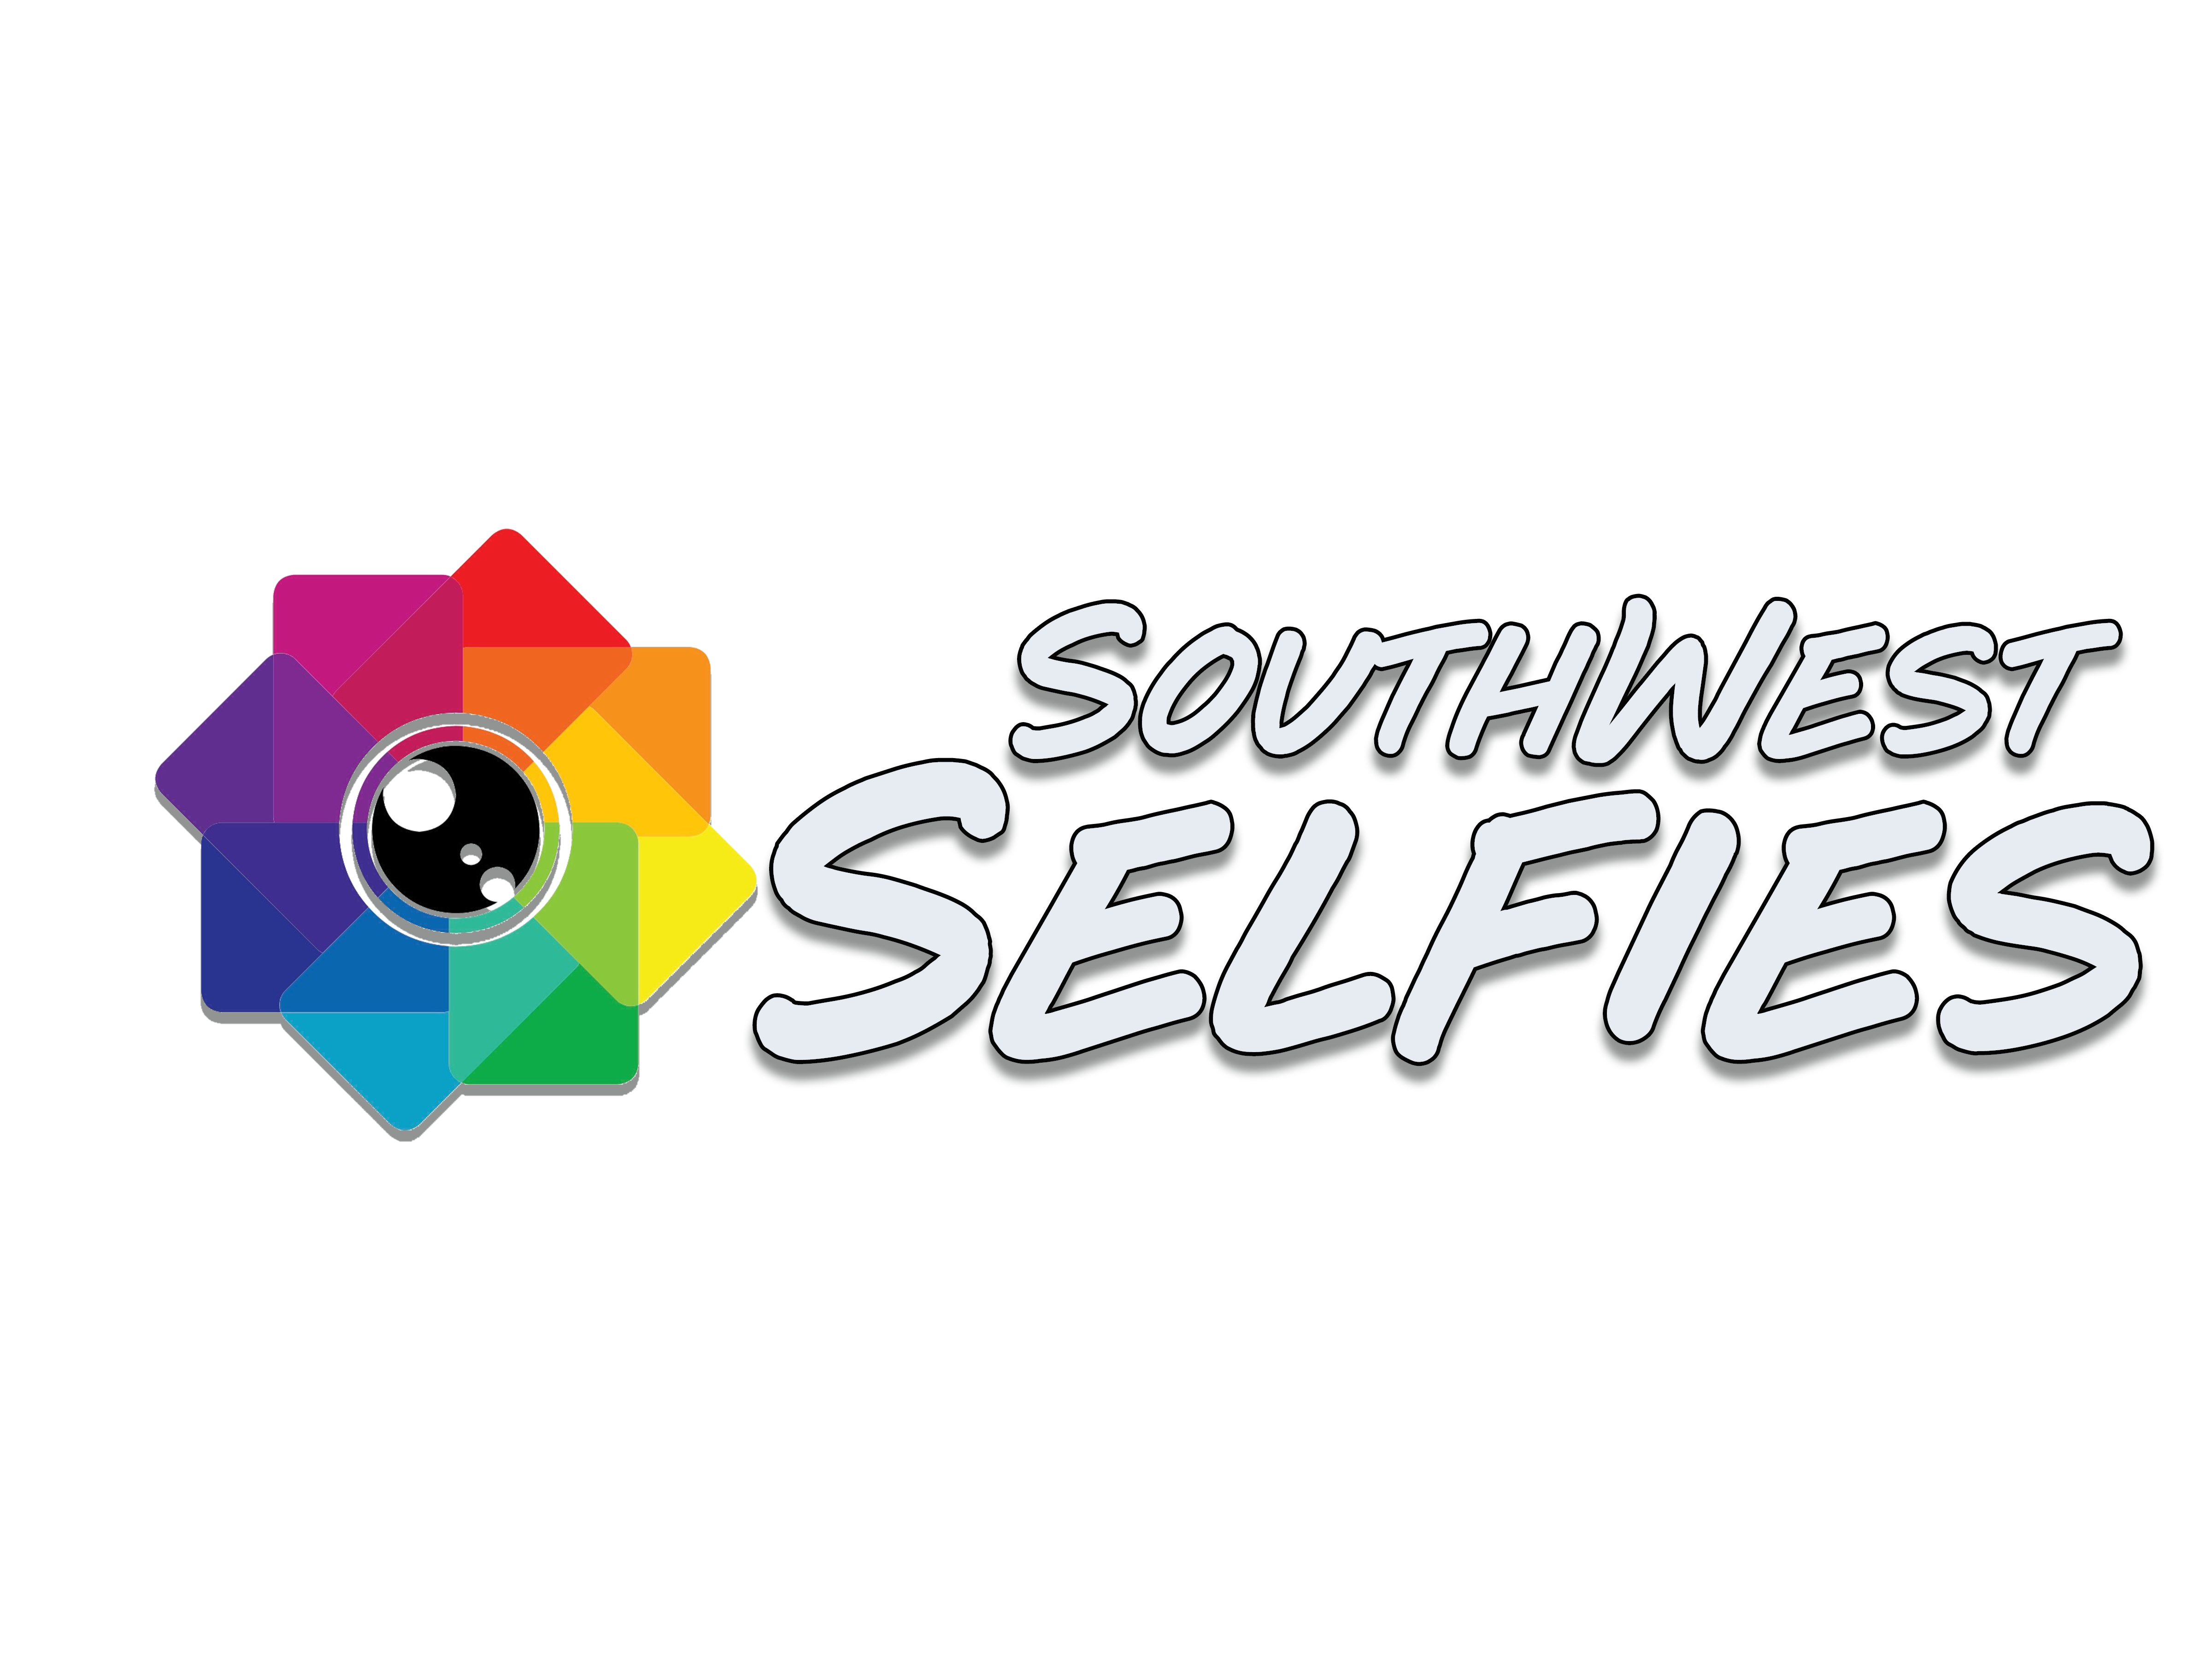 new southwest selfies logo